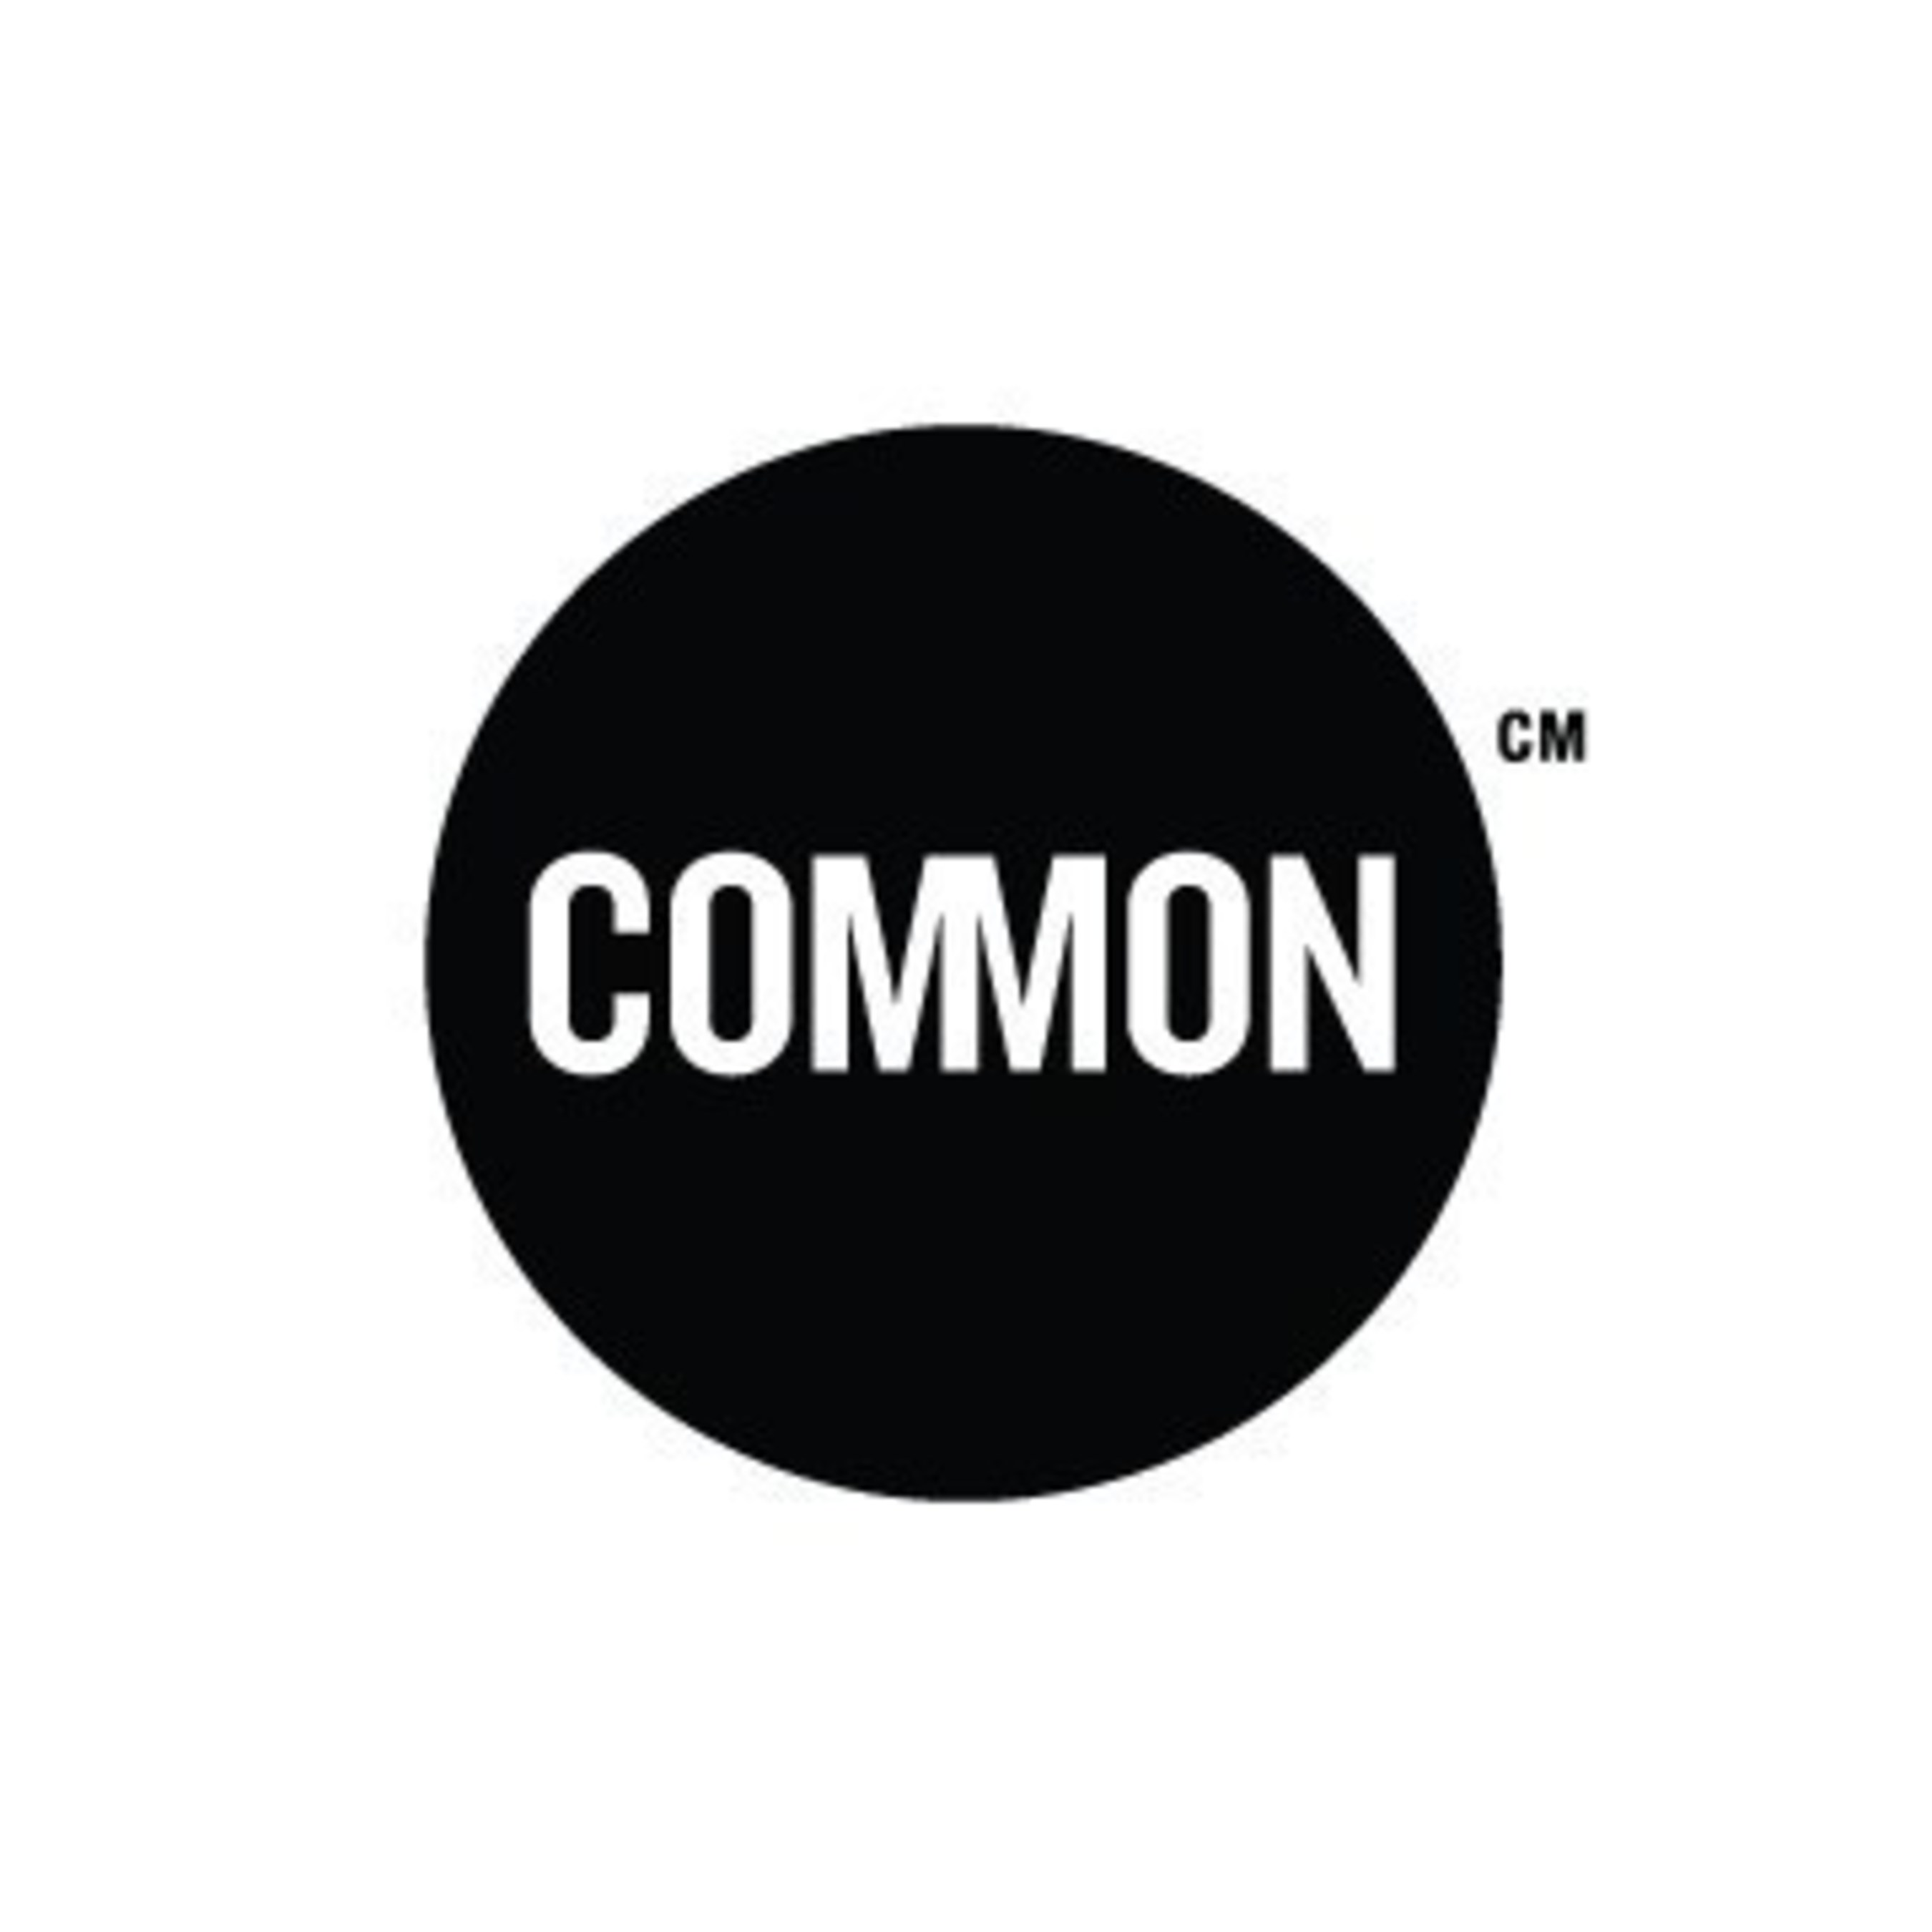 COMMON and Incline Solutions Announce Partnership Interconnecting Social Business Products and